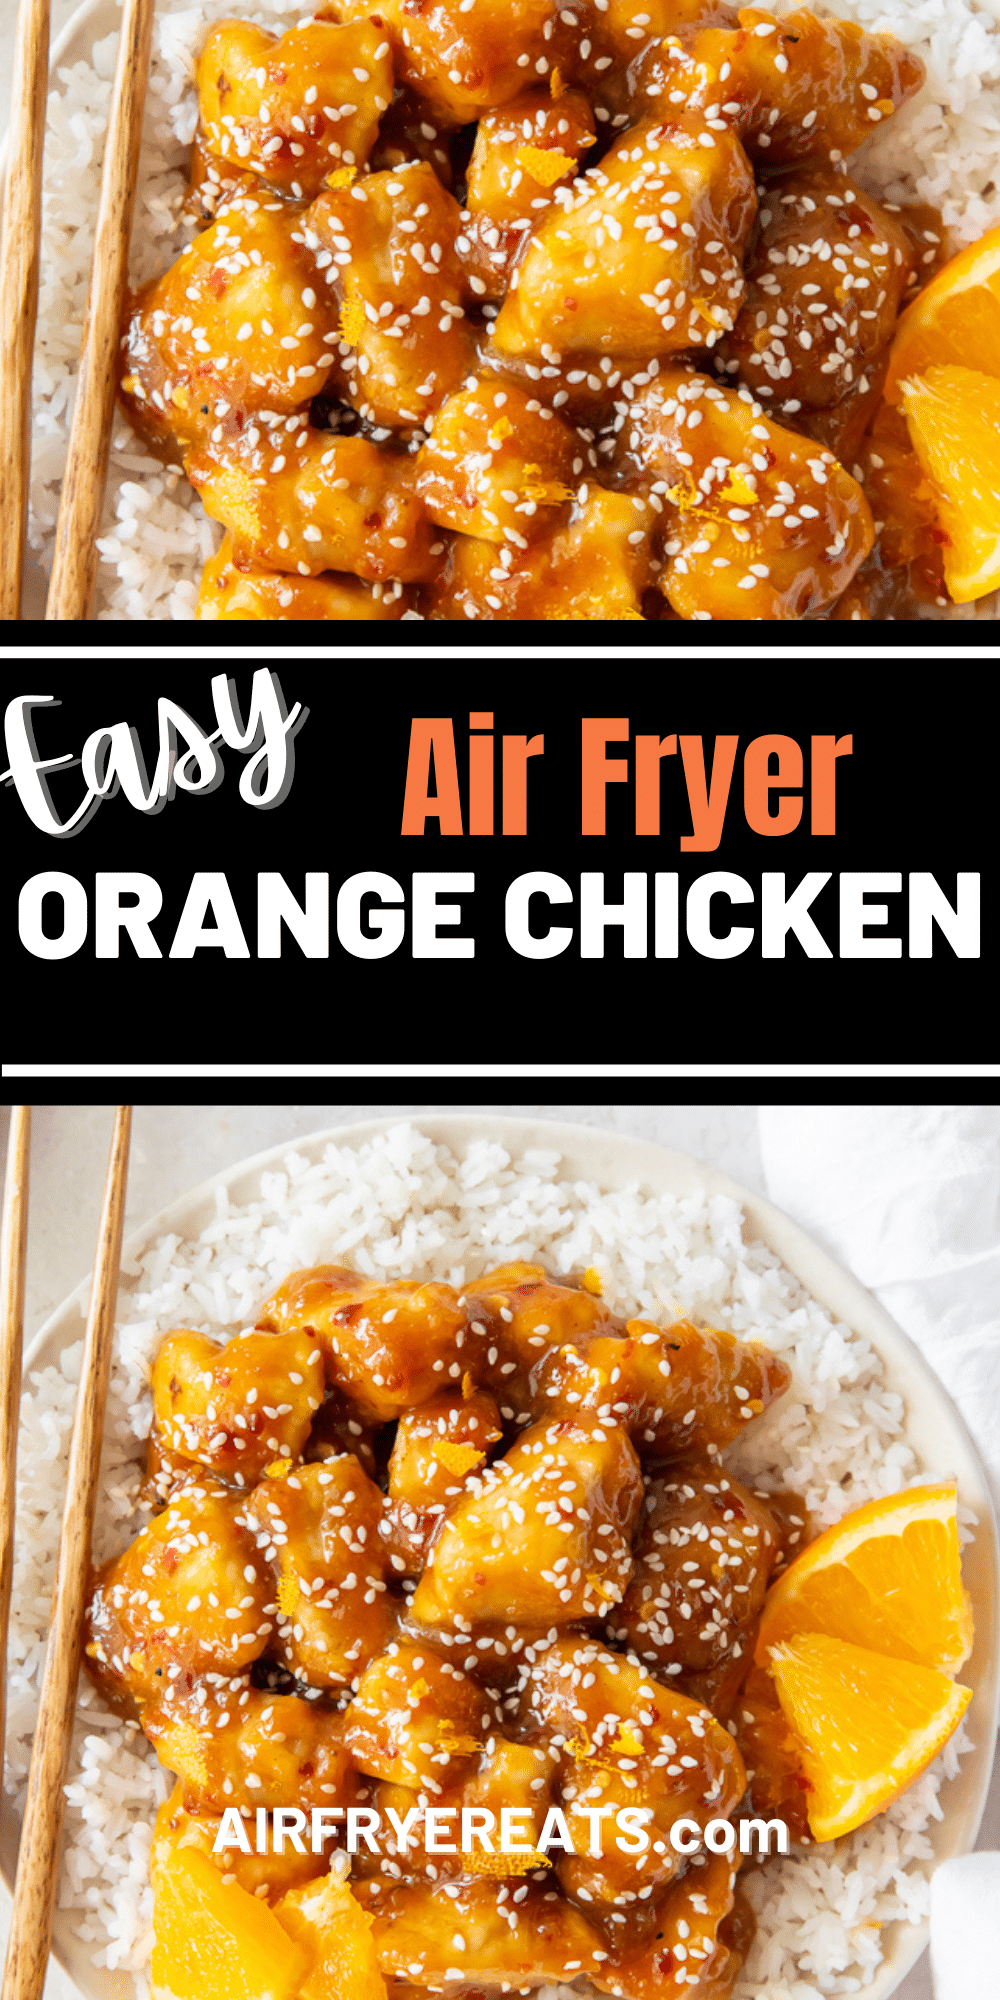 Air Fryer Orange Chicken is tangy, sweet, savory, and the ultimate Chinese take out copycat recipe. The air fryer makes cooking a delicious Orange Chicken meal easy! #orangechicken #airfryer via @vegetarianmamma